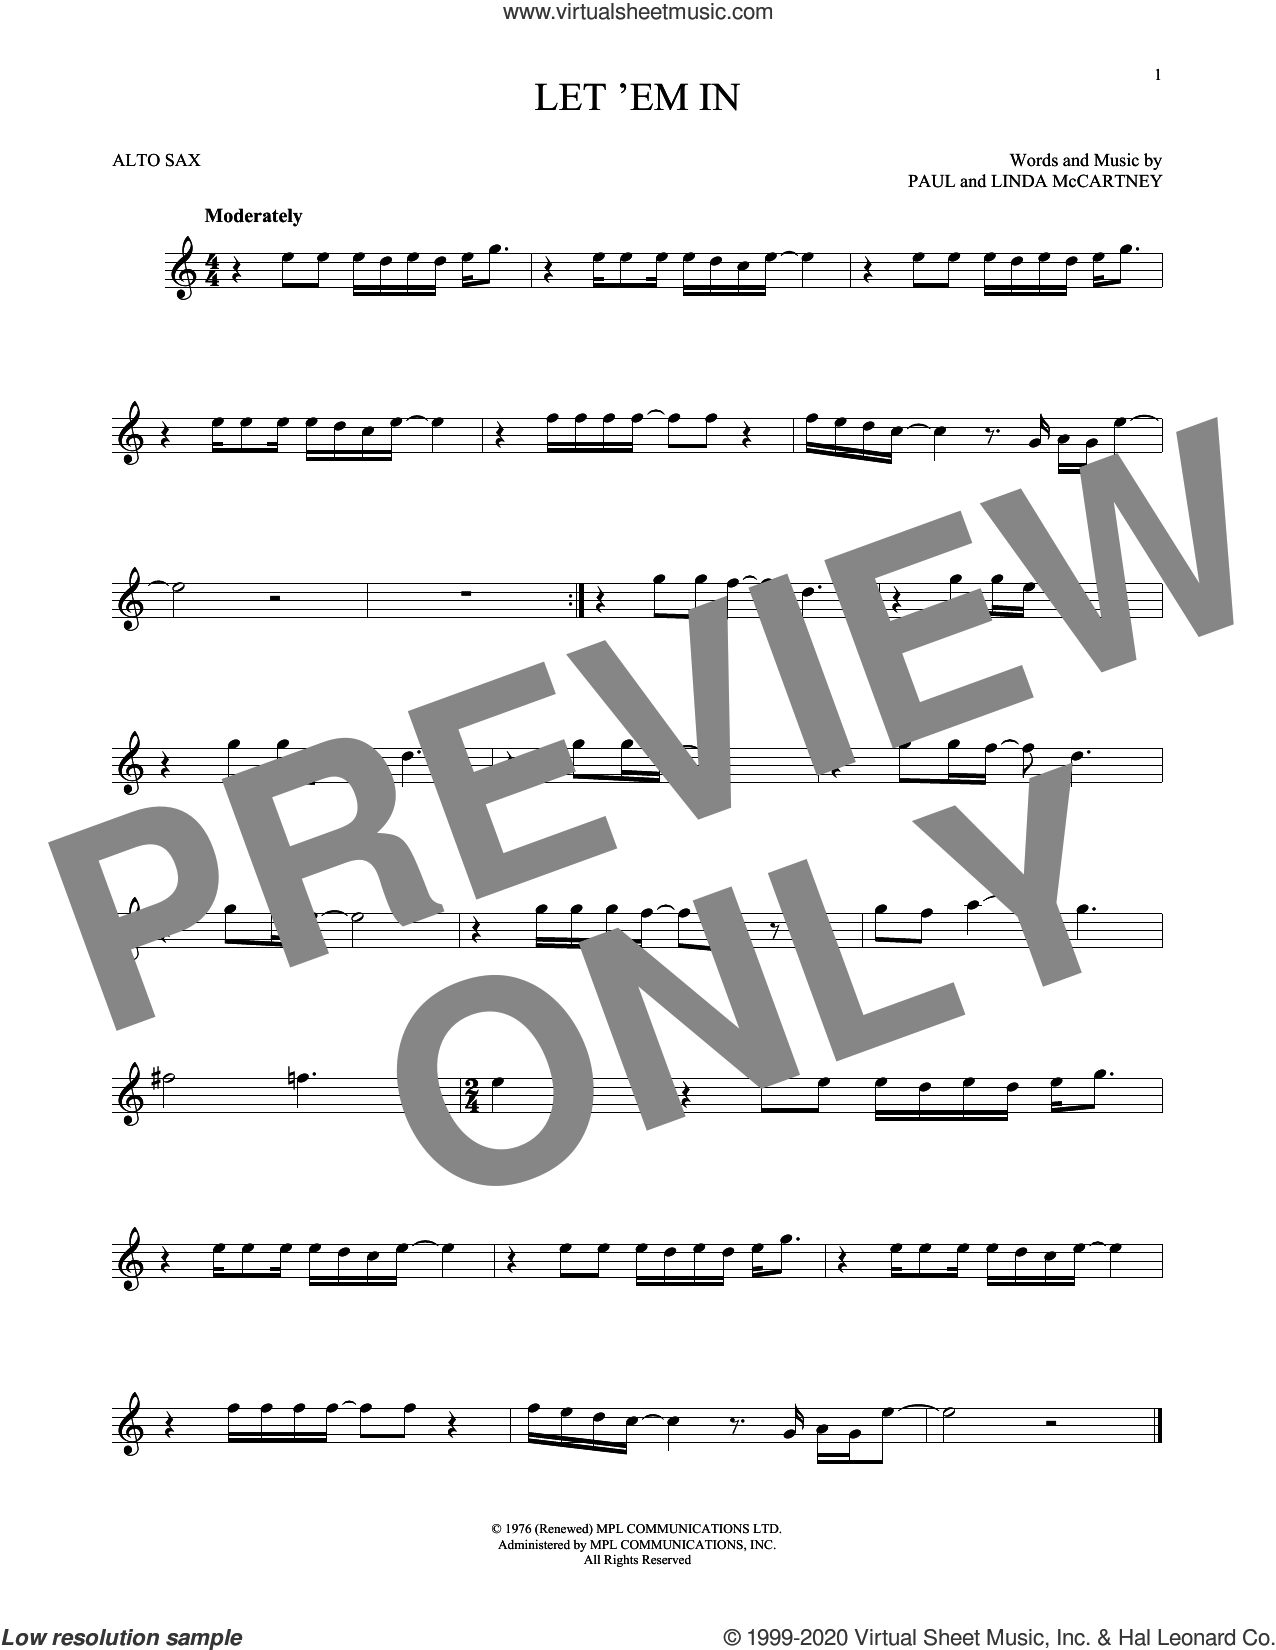 Let 'Em In sheet music for alto saxophone solo by Wings, Linda McCartney and Paul McCartney, intermediate skill level